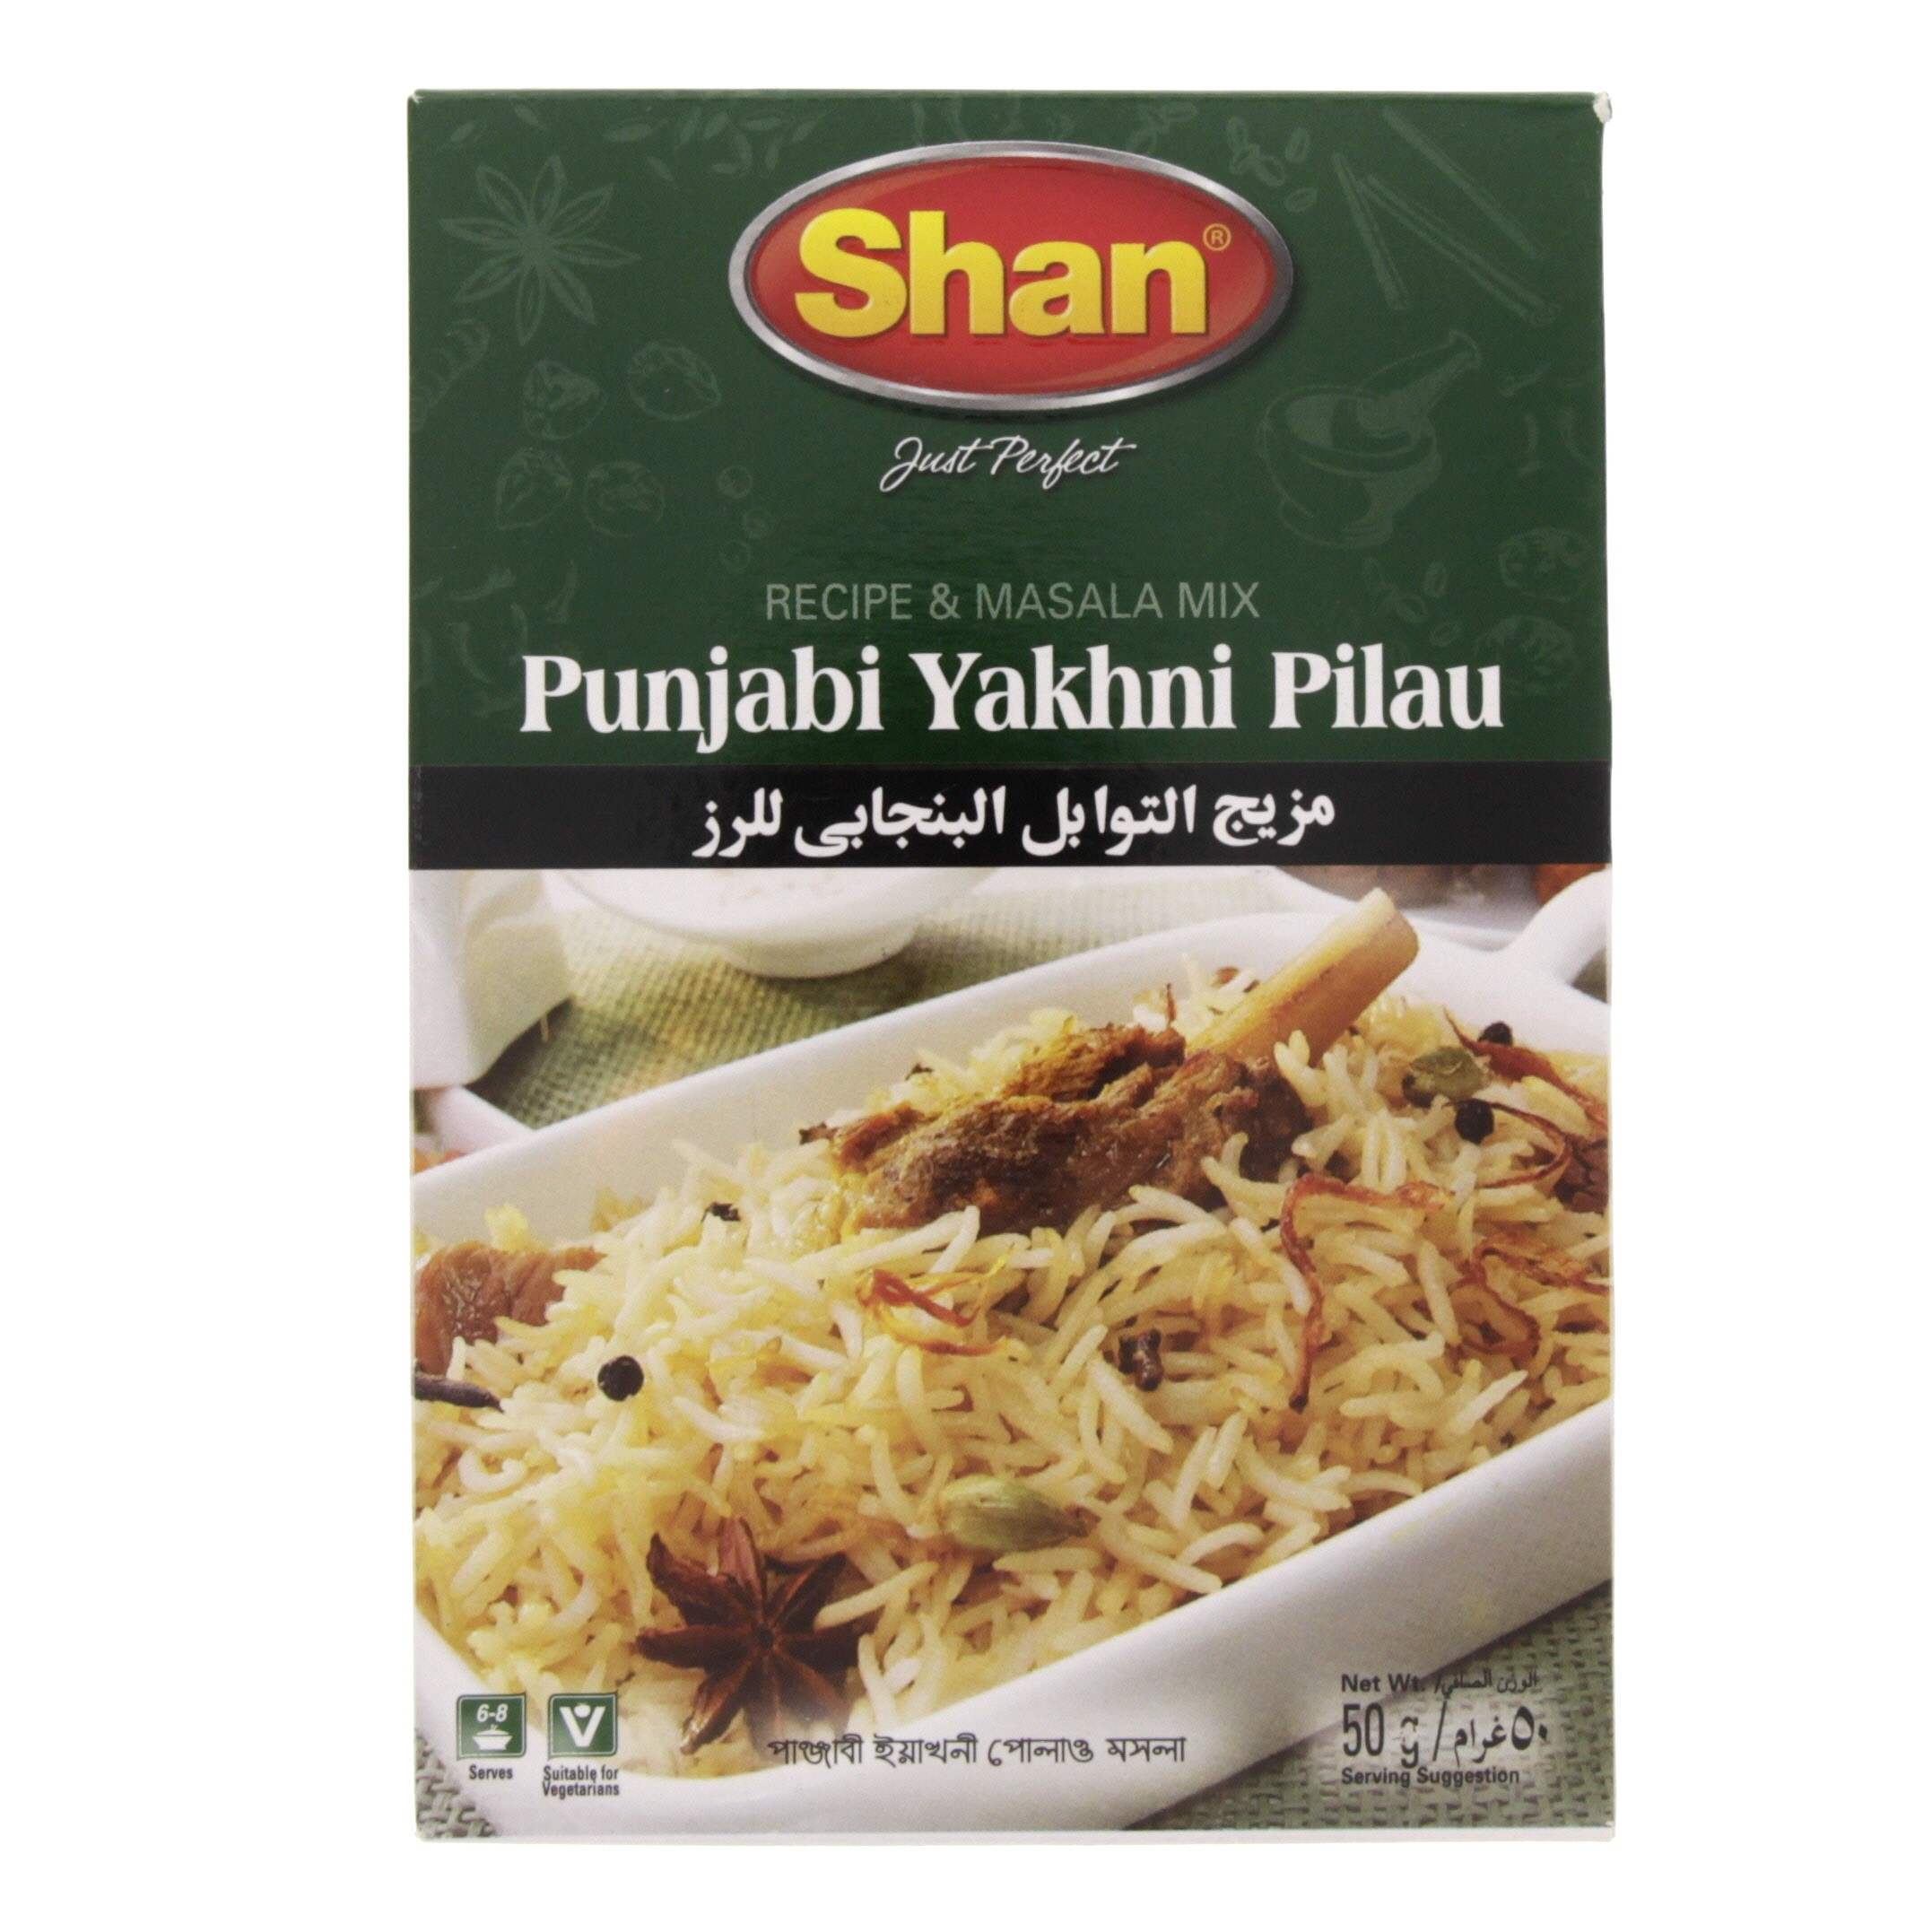 Shan Punjabi Yakhni Pilau 50g x 1 pc - My247Mart   Grocery within a Click  Away